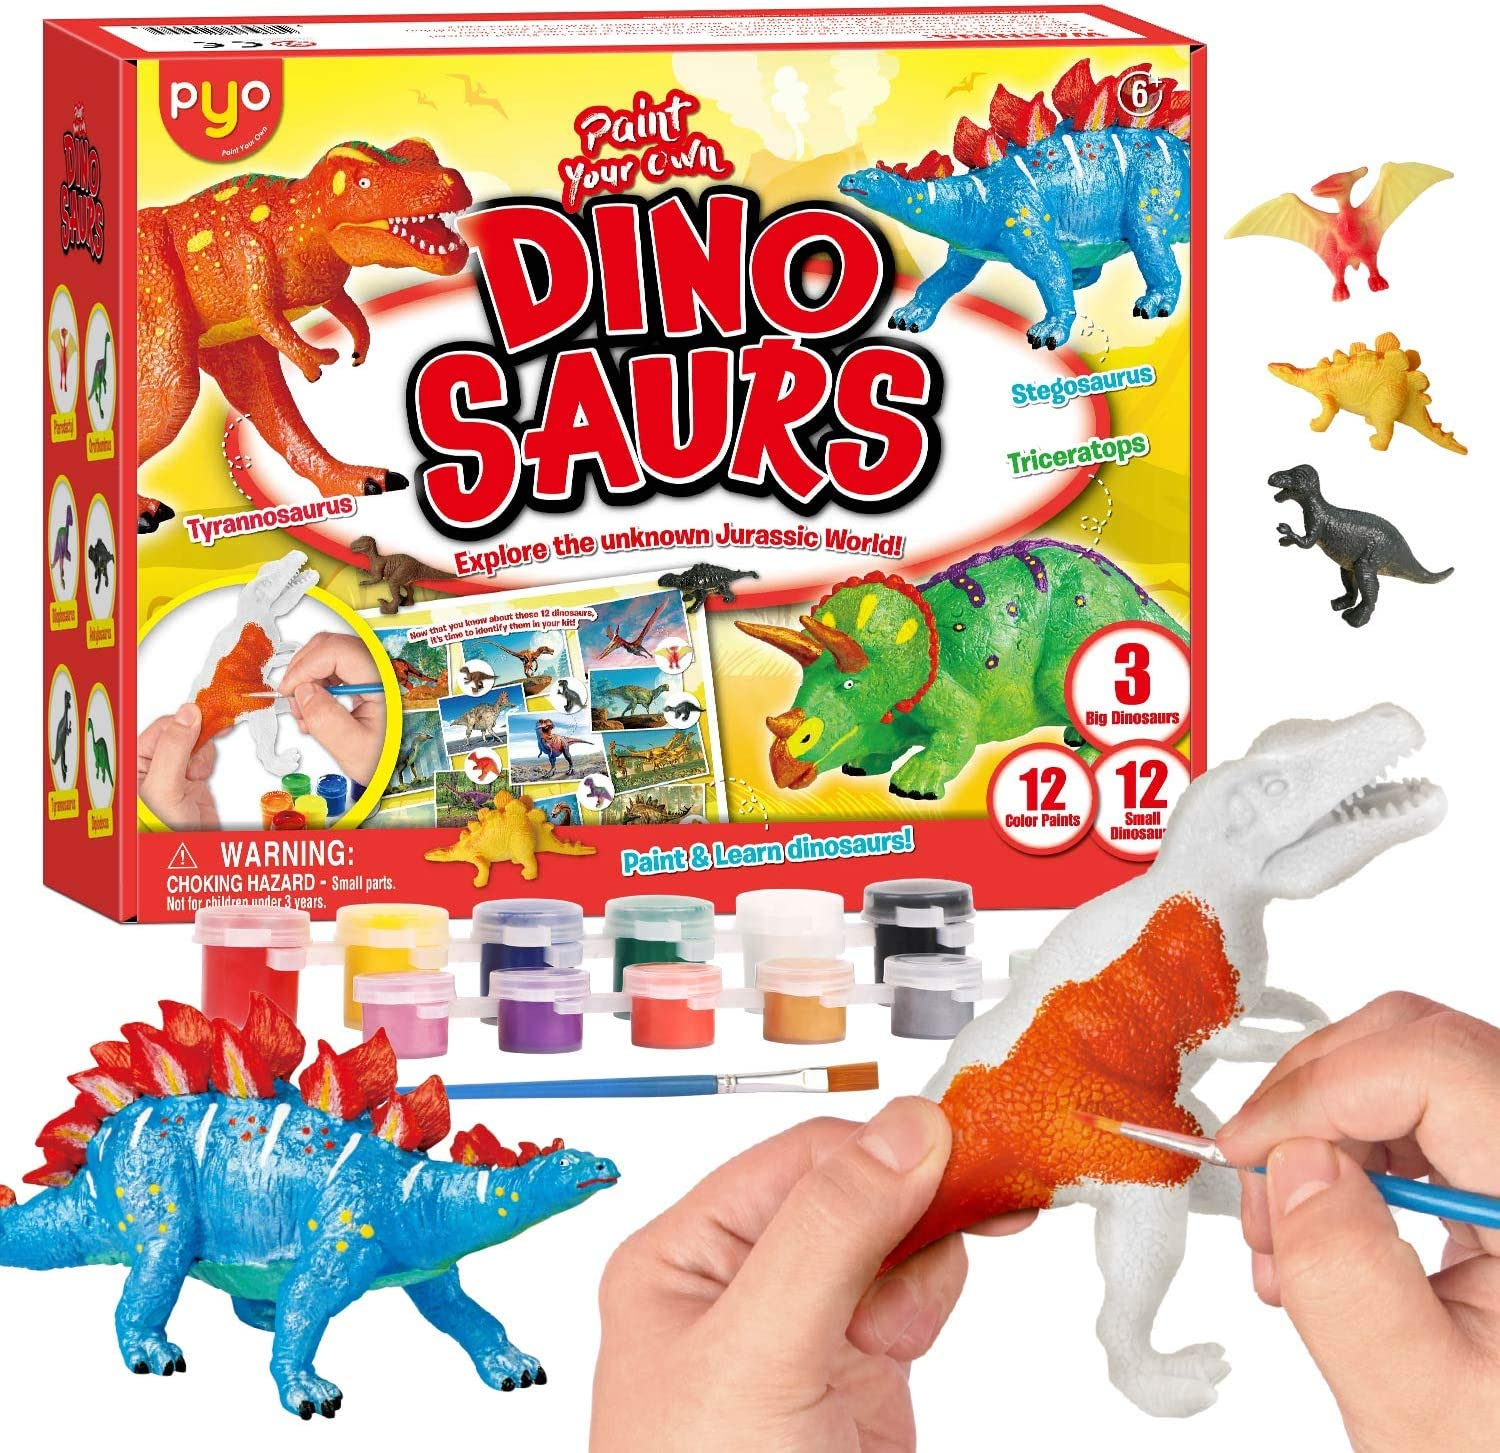 TONYBUTY Dinosaur Painting Kit Al sold out. Kids Outlet sale feature Crafts Toy